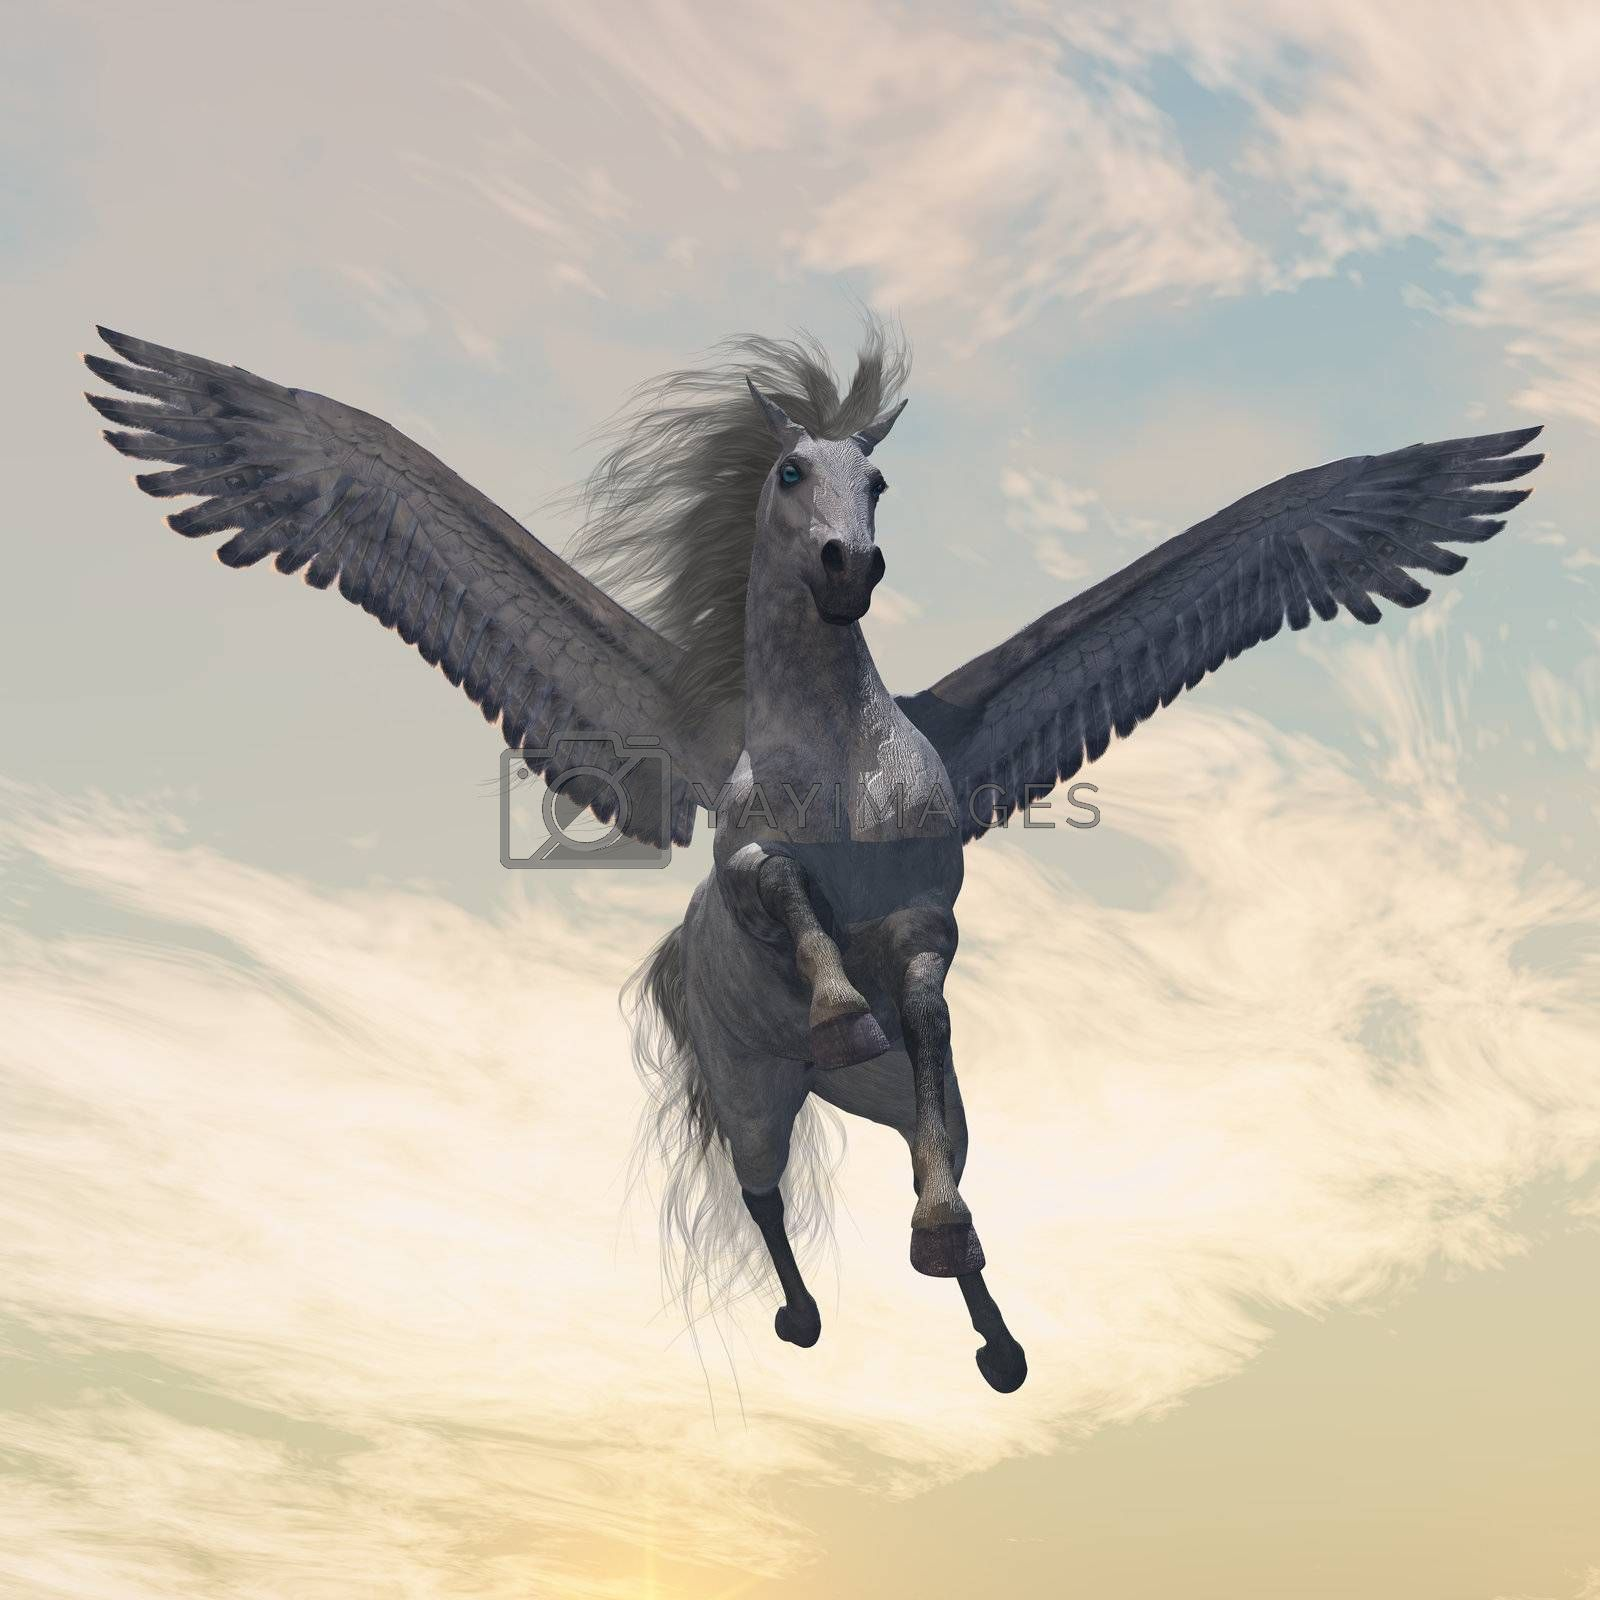 The fabled creature of myth and legend, the white Pegasus, flies with beautiful wings.